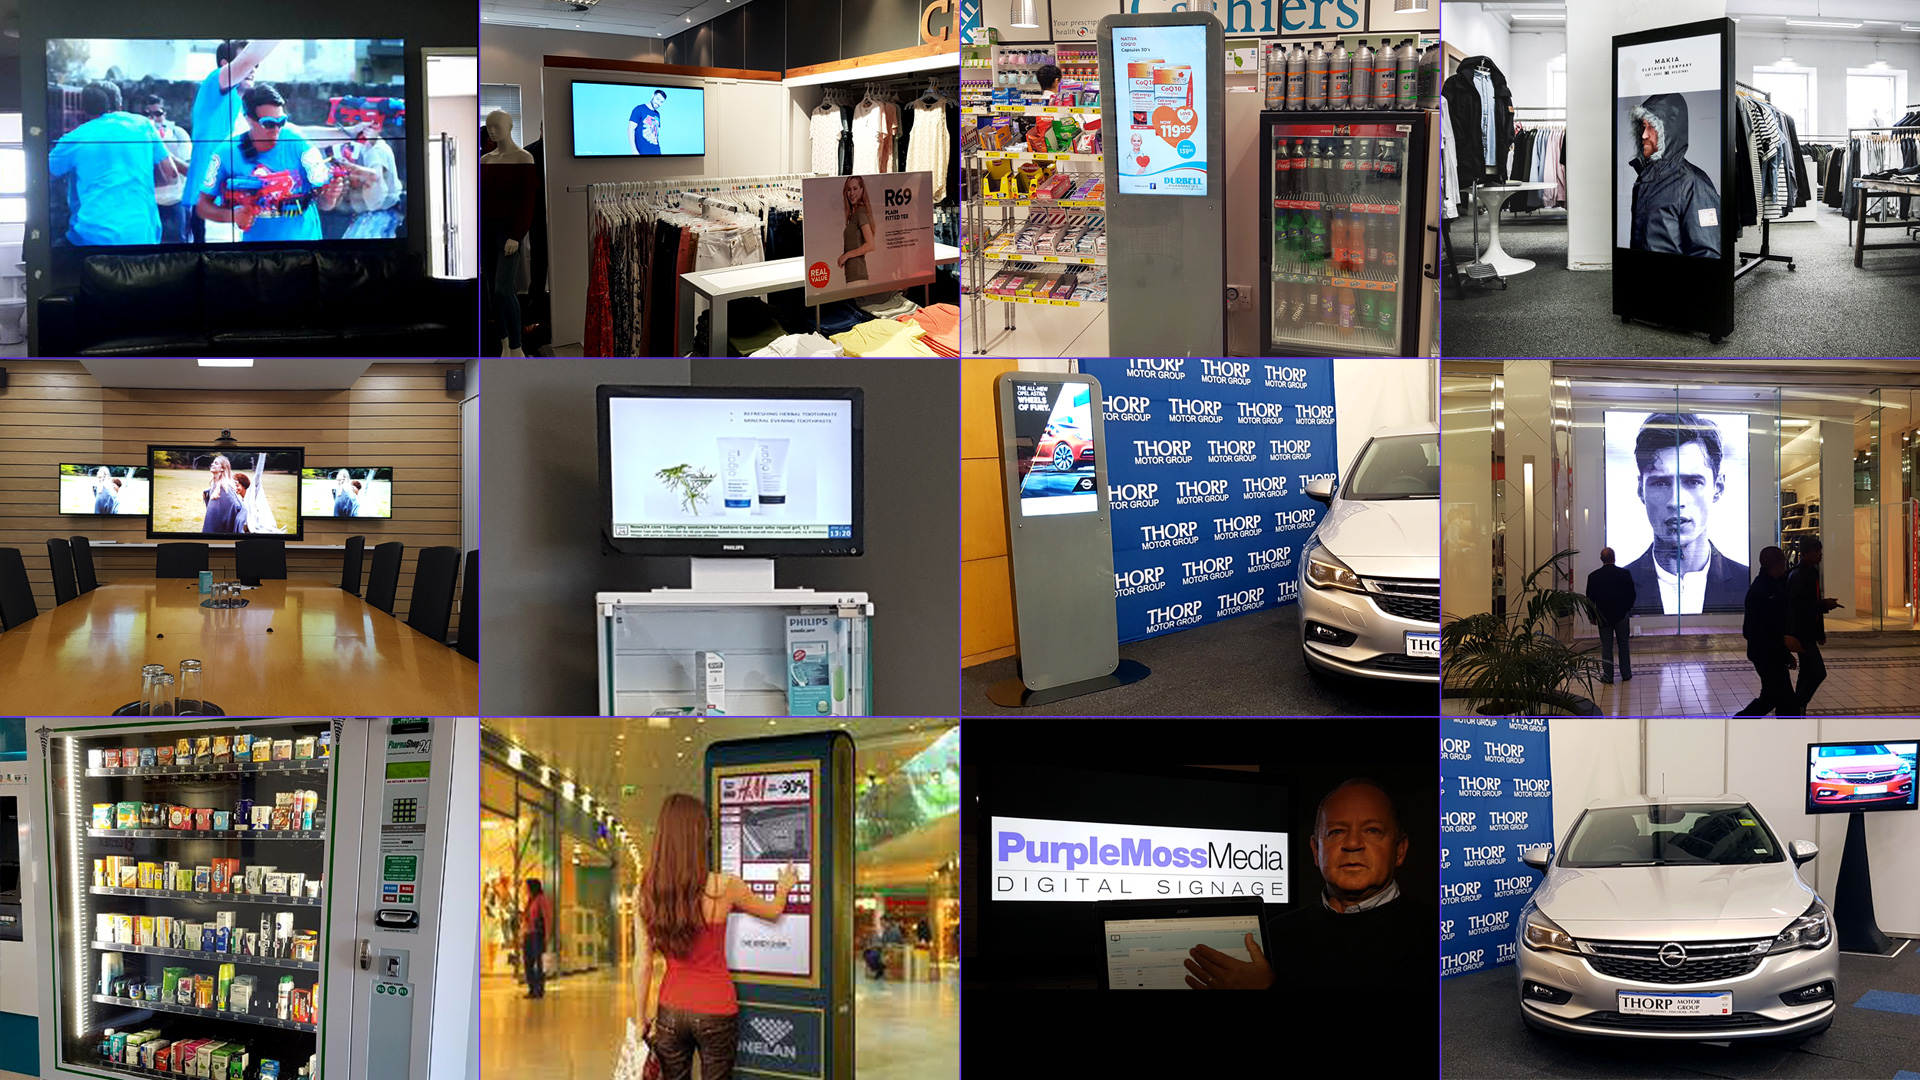 Digital content - video tv advertising displays